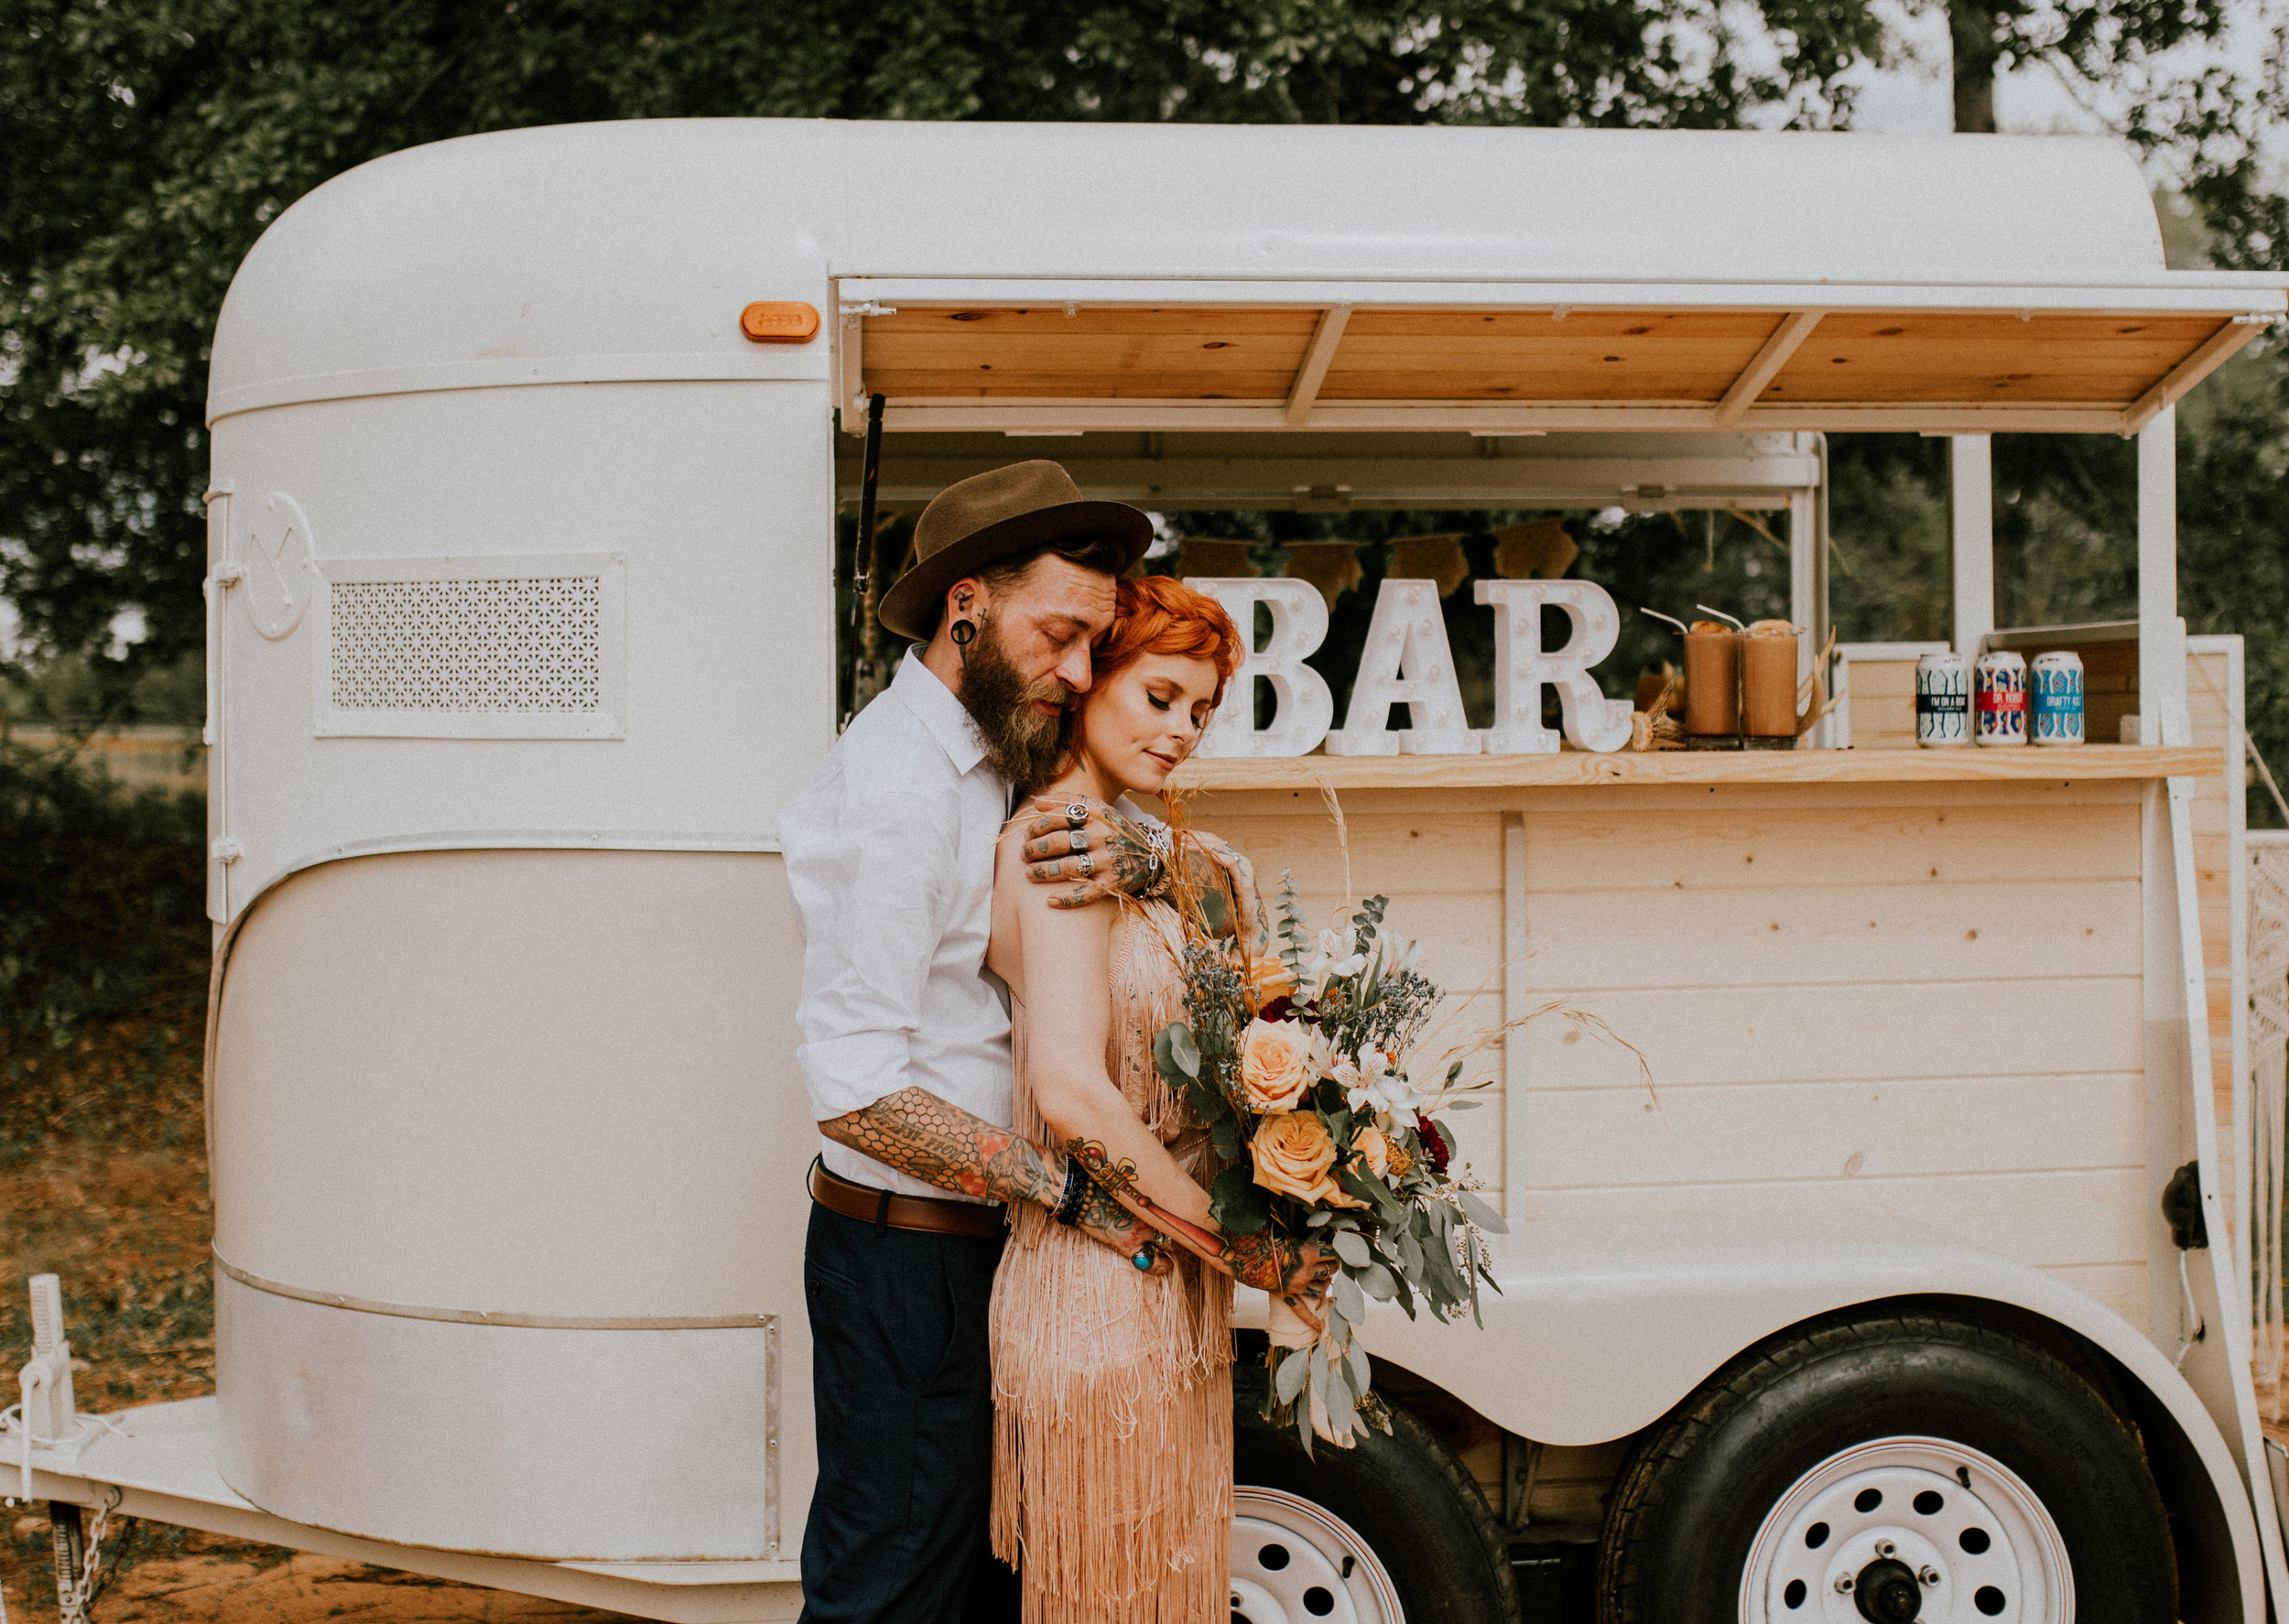 Drinks + Romance for the win! pc: Kendi Austinson Photography